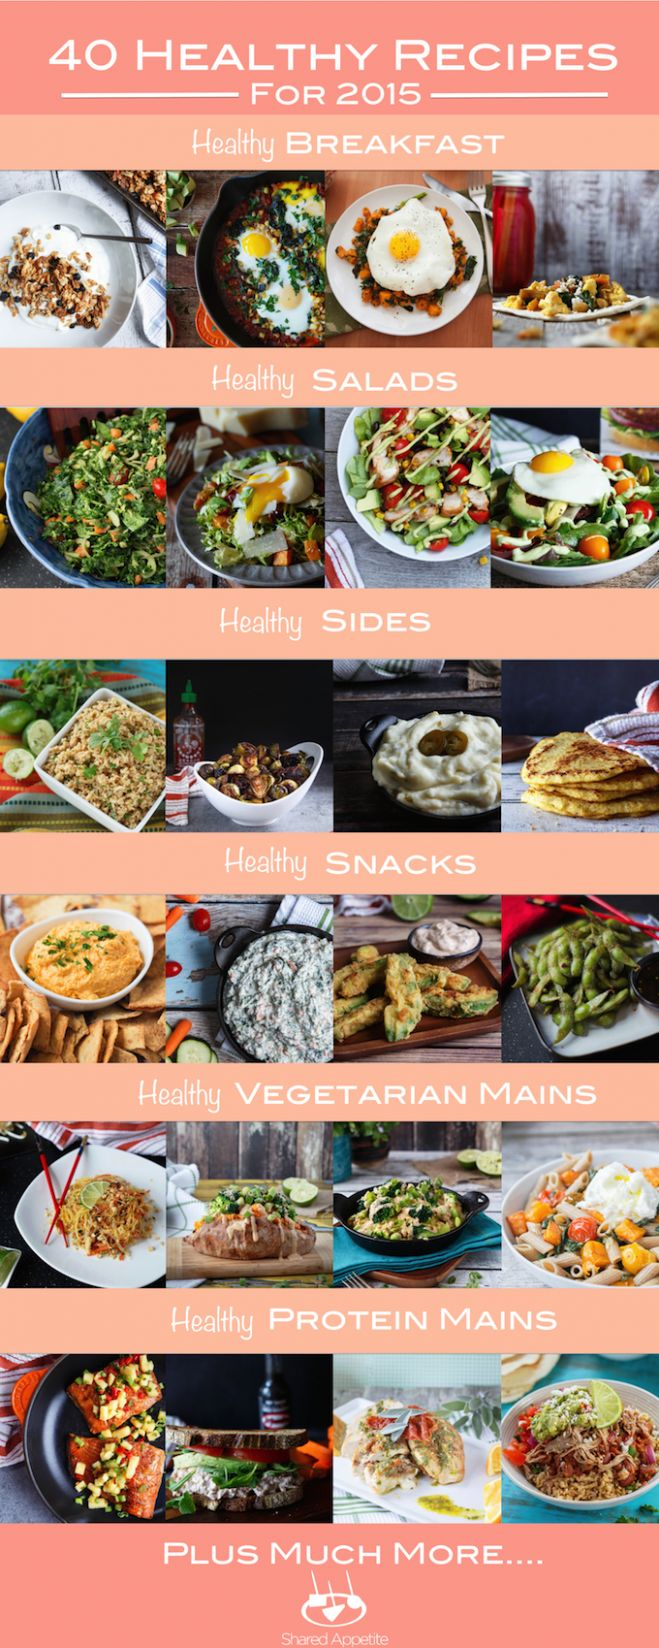 Healthy Recipes That Actually Taste Good - Shared Appetite - Healthy Recipes That Taste Good